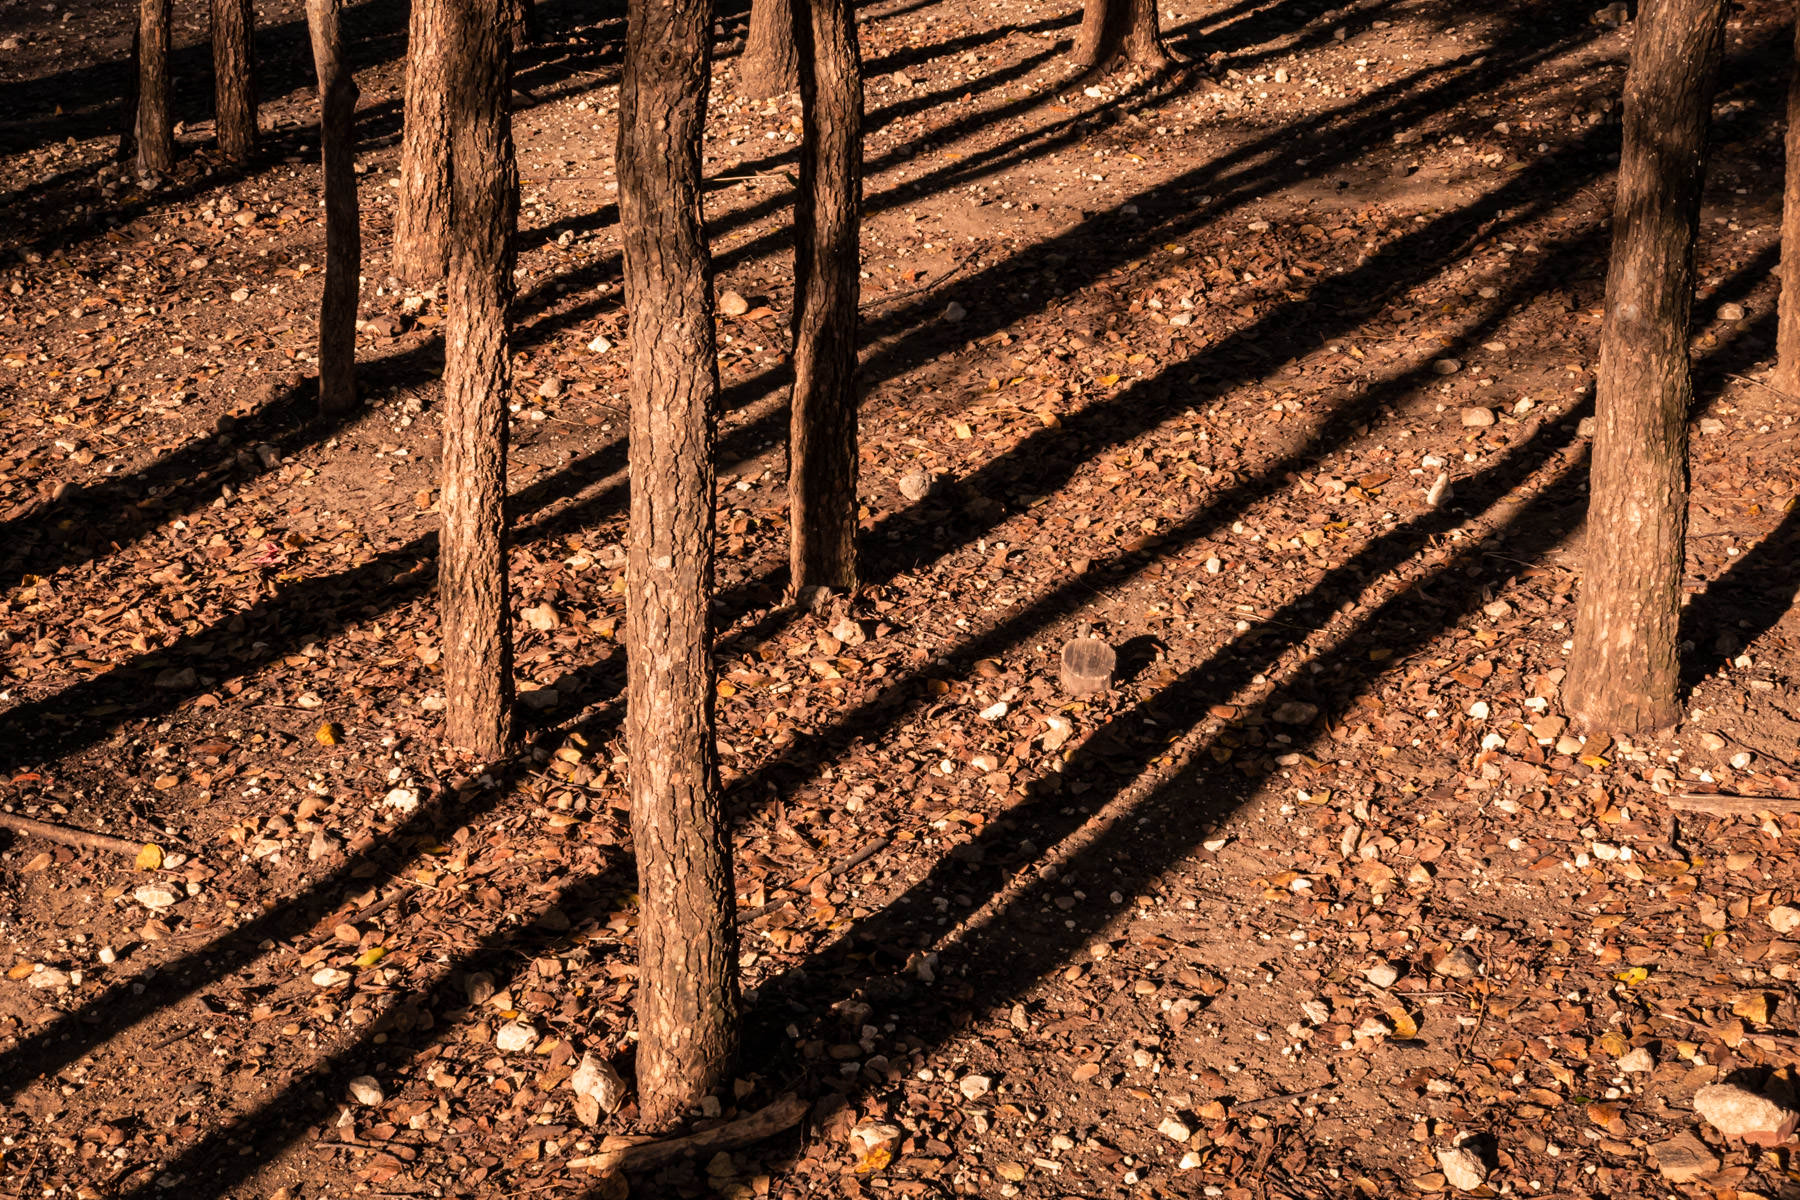 Trees cast shadows on a sunny autumn day in a small wooded area at a park in Dallas, Texas.